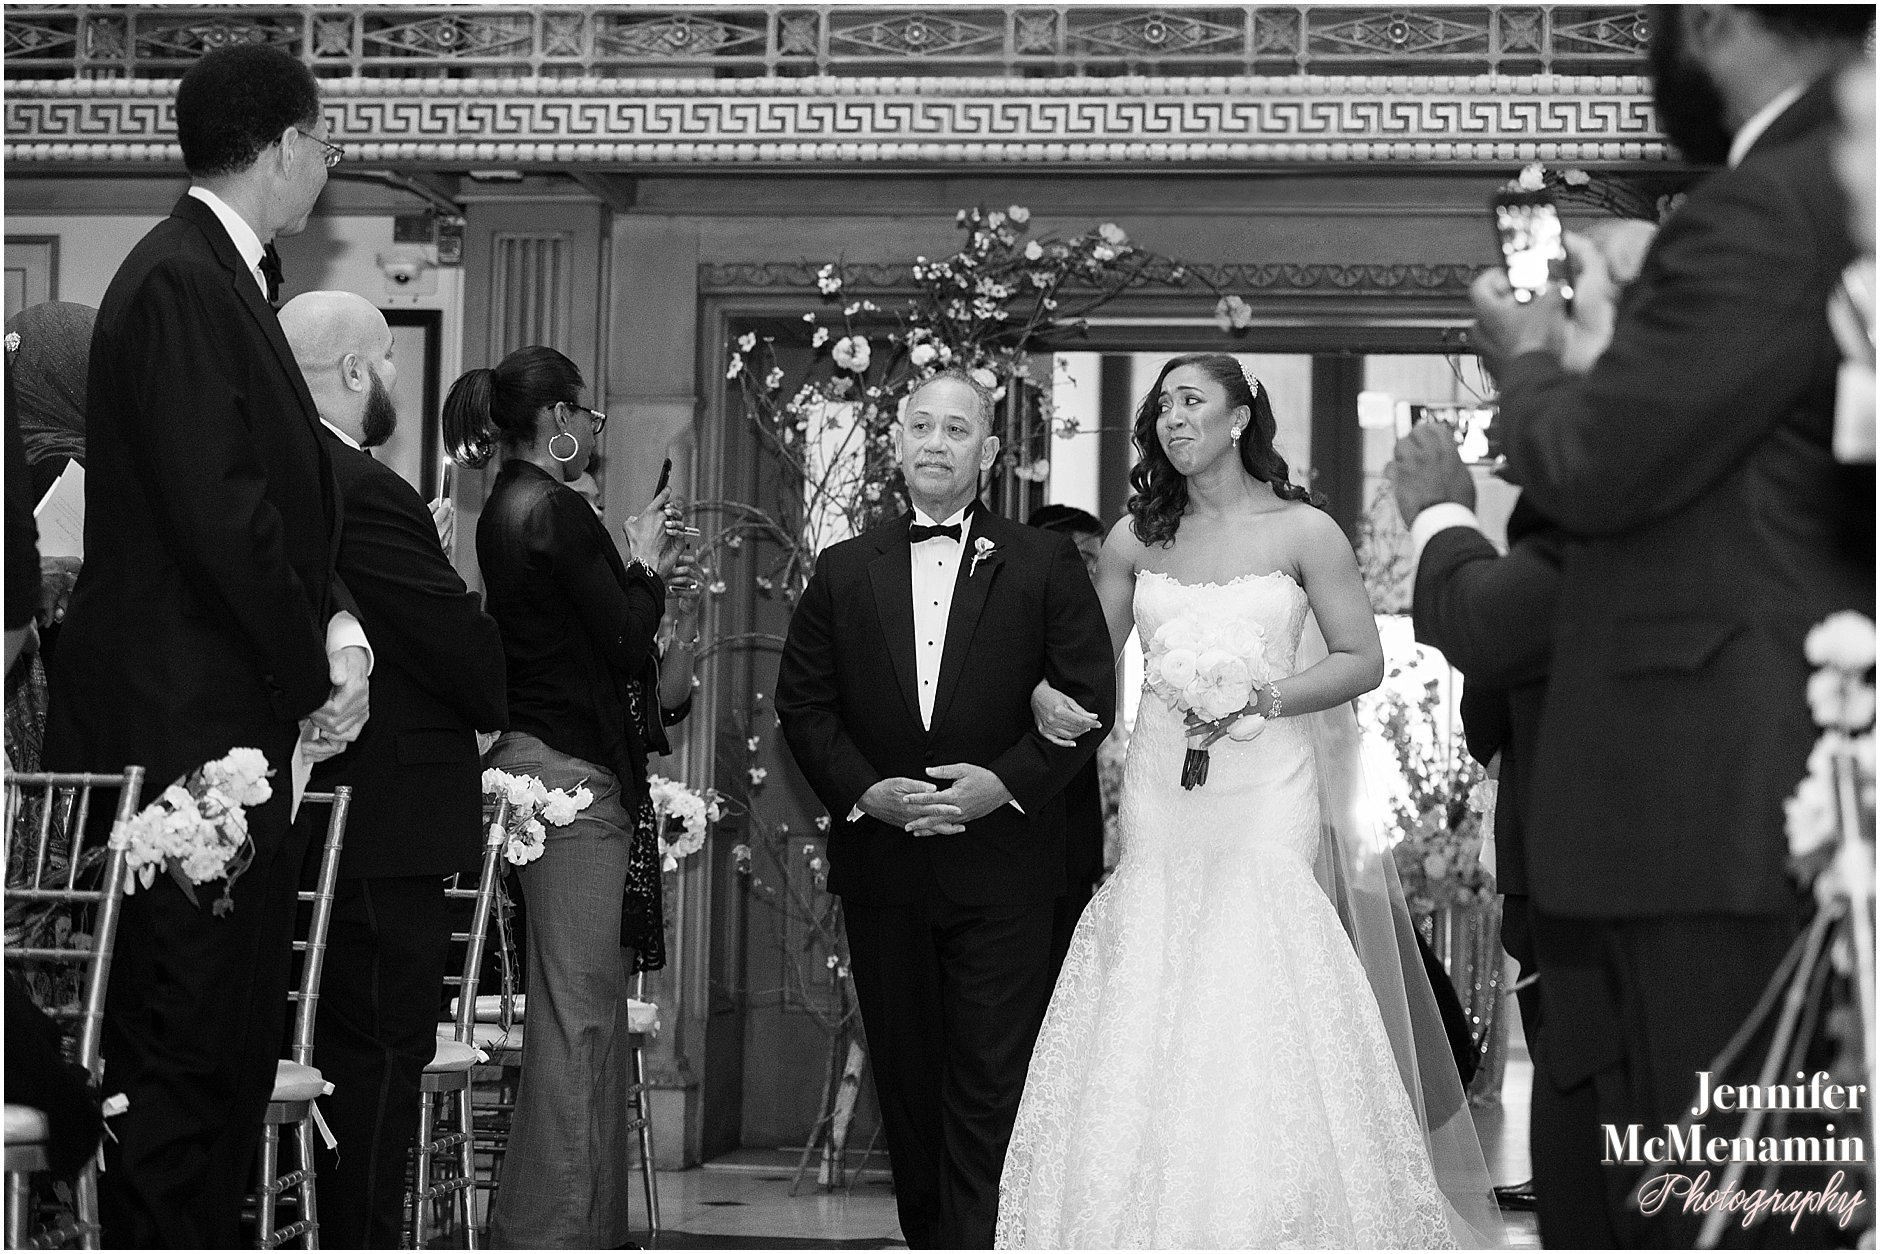 028-Peabody-Library-Wedding_WilsonPatterson_01452bw-0286_Jennifer-McMenamin-Photography